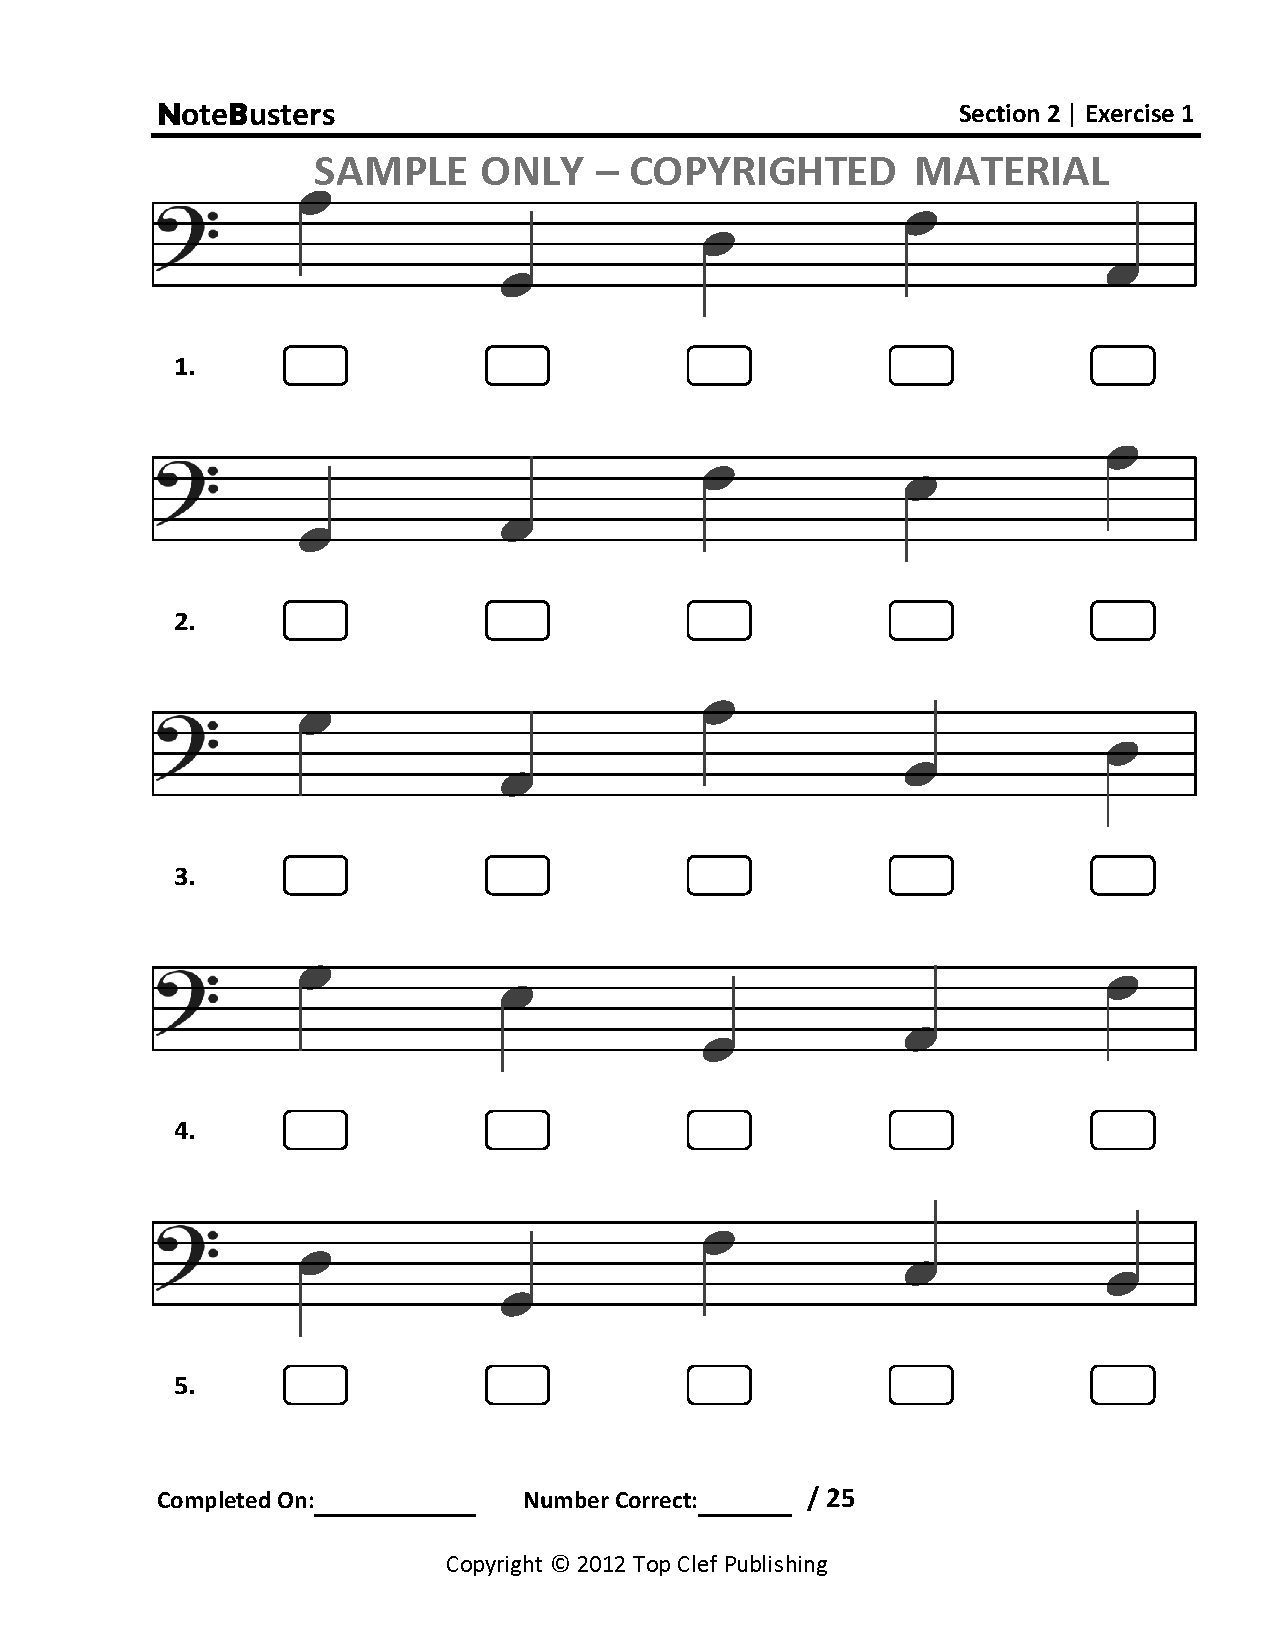 Notebusters Note Reading Music Workbook Section 2 Sample